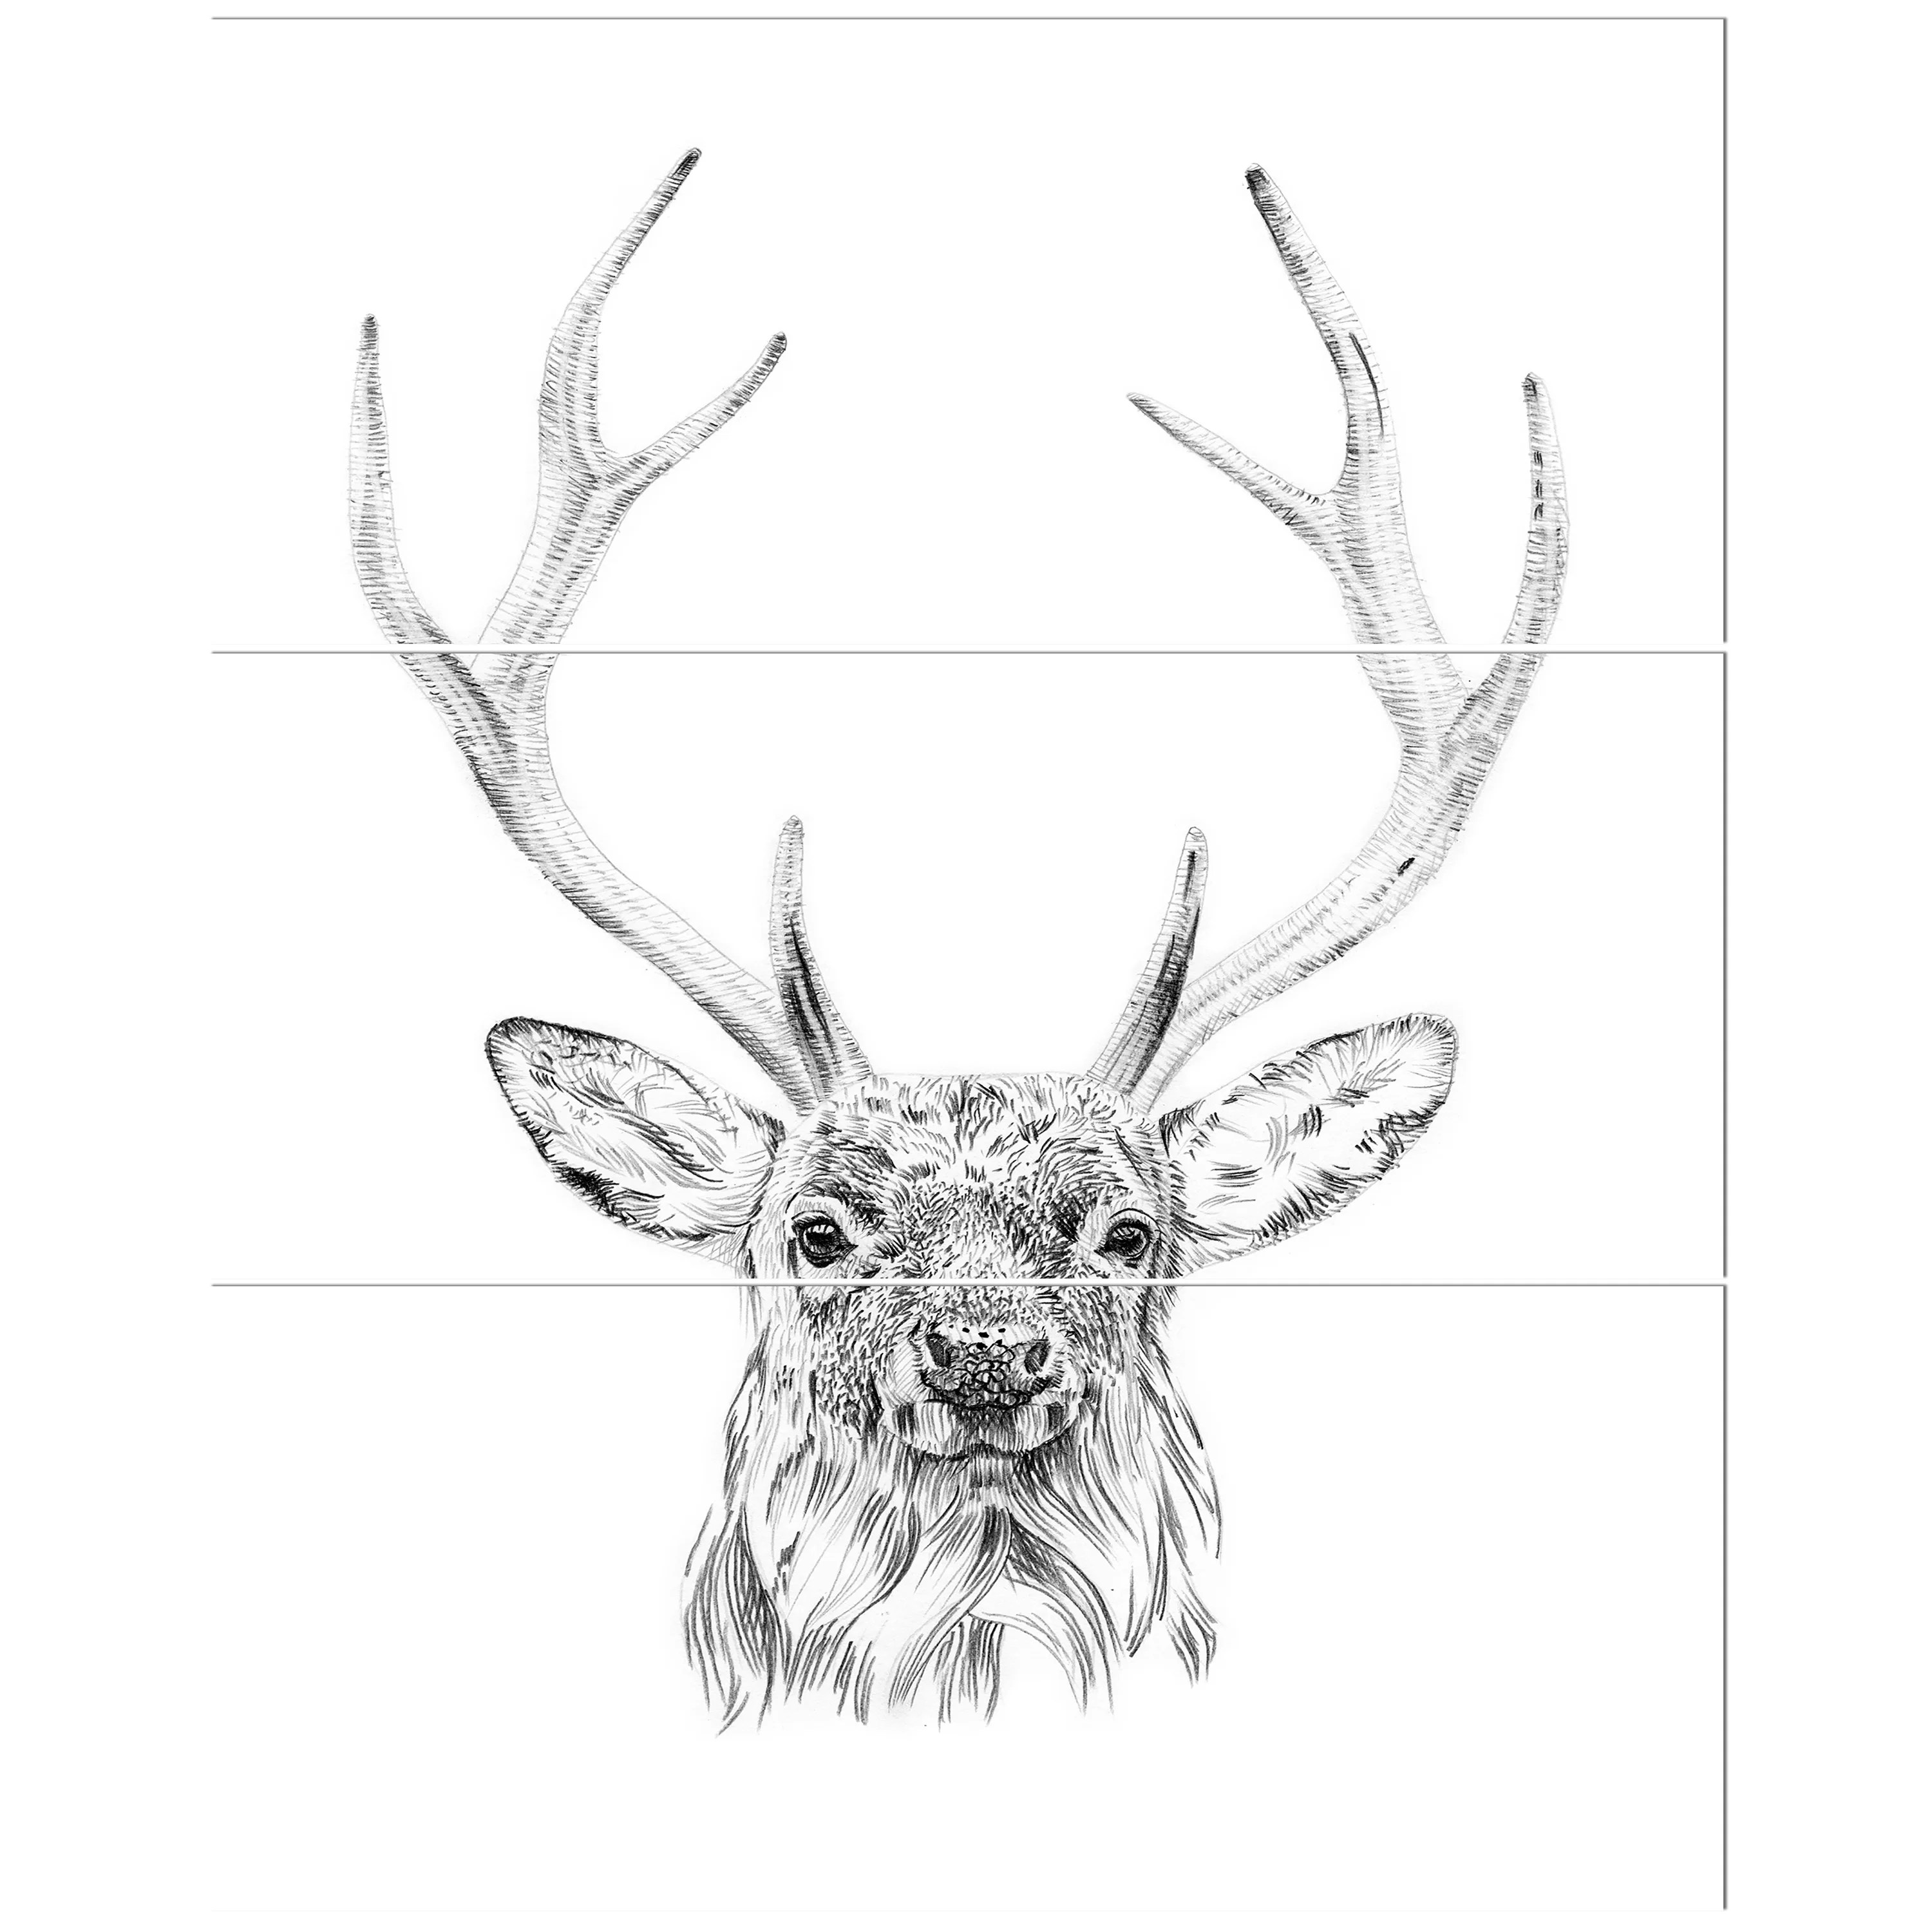 East Urban Home Pencil Deer Sketch In Black And White Drawing Print Multi Piece Image On Canvas Wayfair